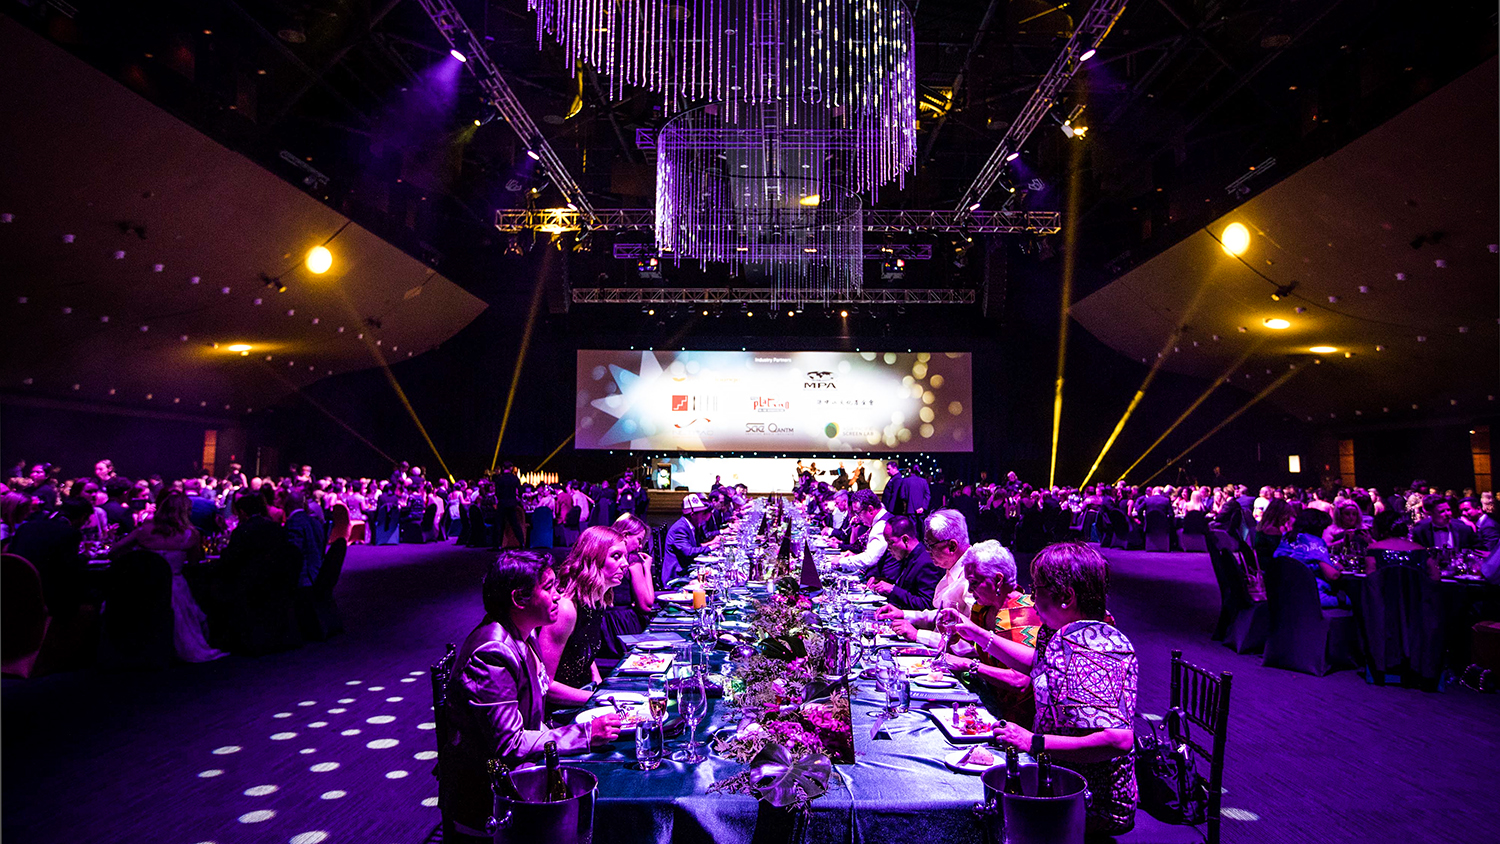 12th Asia Pacific Screen Awards held in Brisbane with the view of the Nominees Centre Table